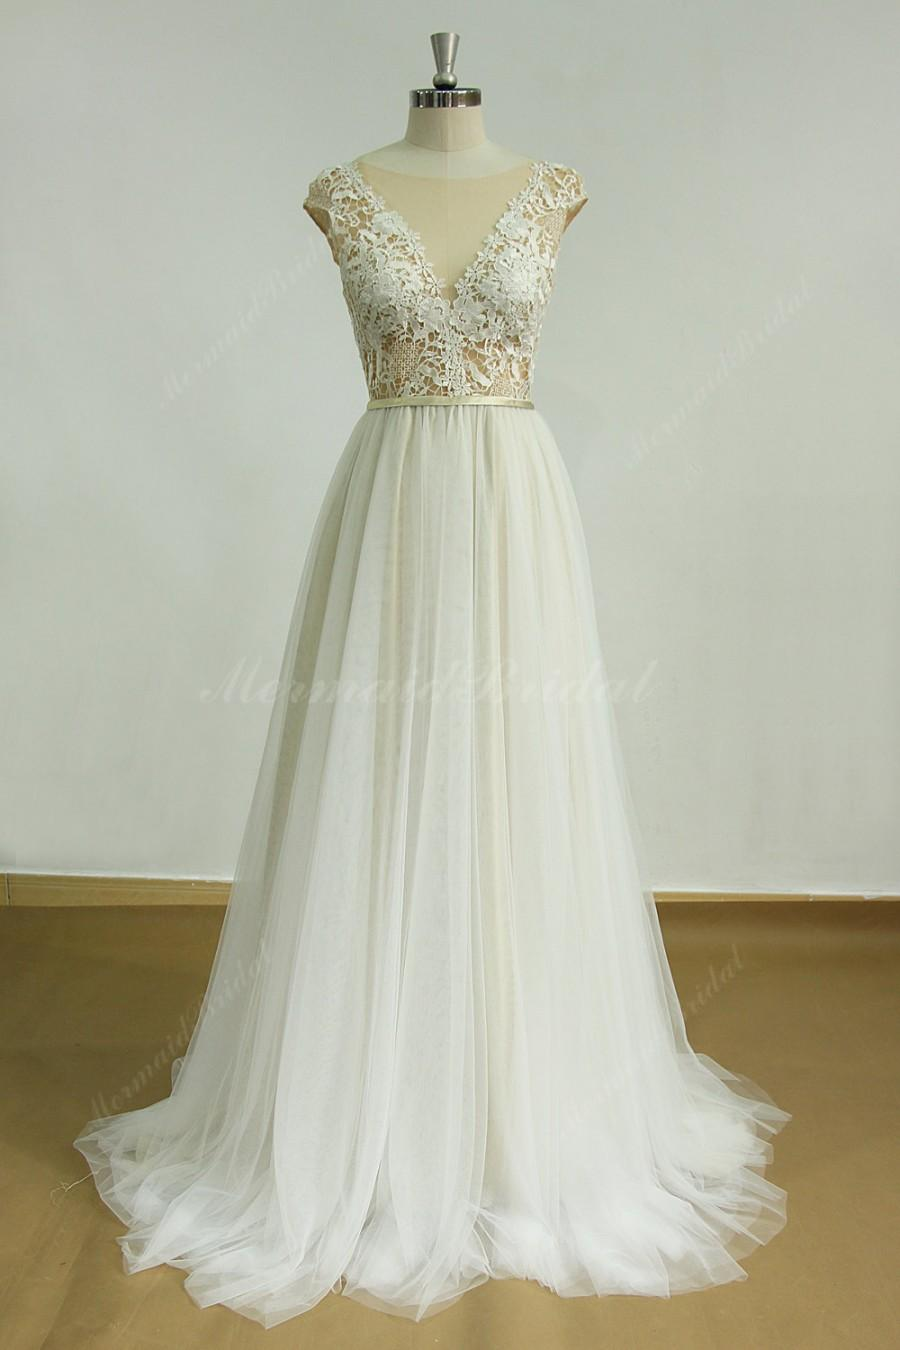 Deep V Cut Open Back Tulle Lace Wedding Dress With Champagne Lining ... 8875f7b87